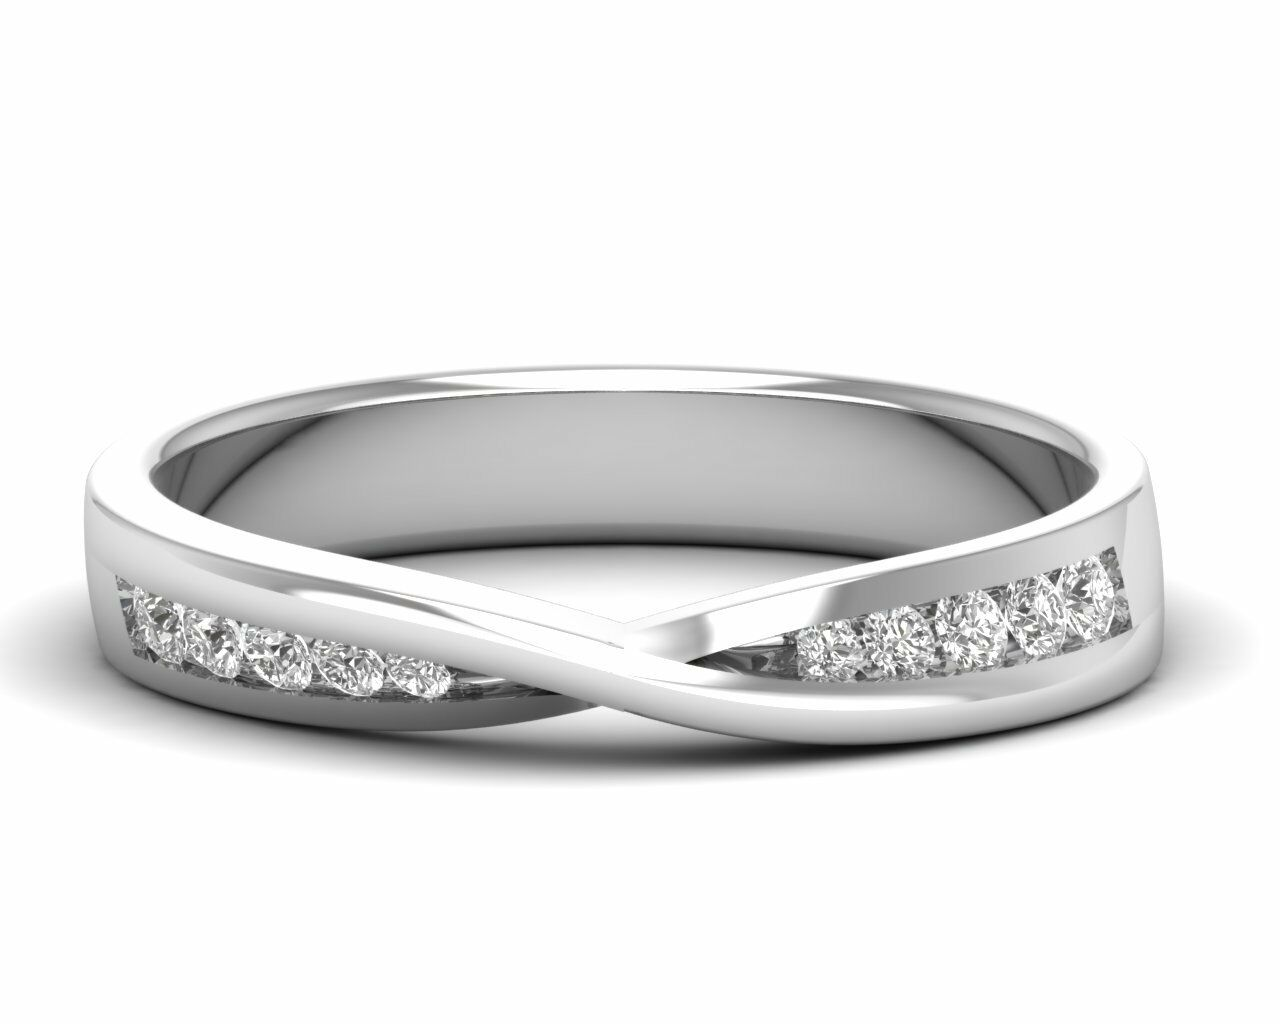 0.20ct Round Brilliant Cut Diamond Half Eternity Ring in 9K, 18K gold